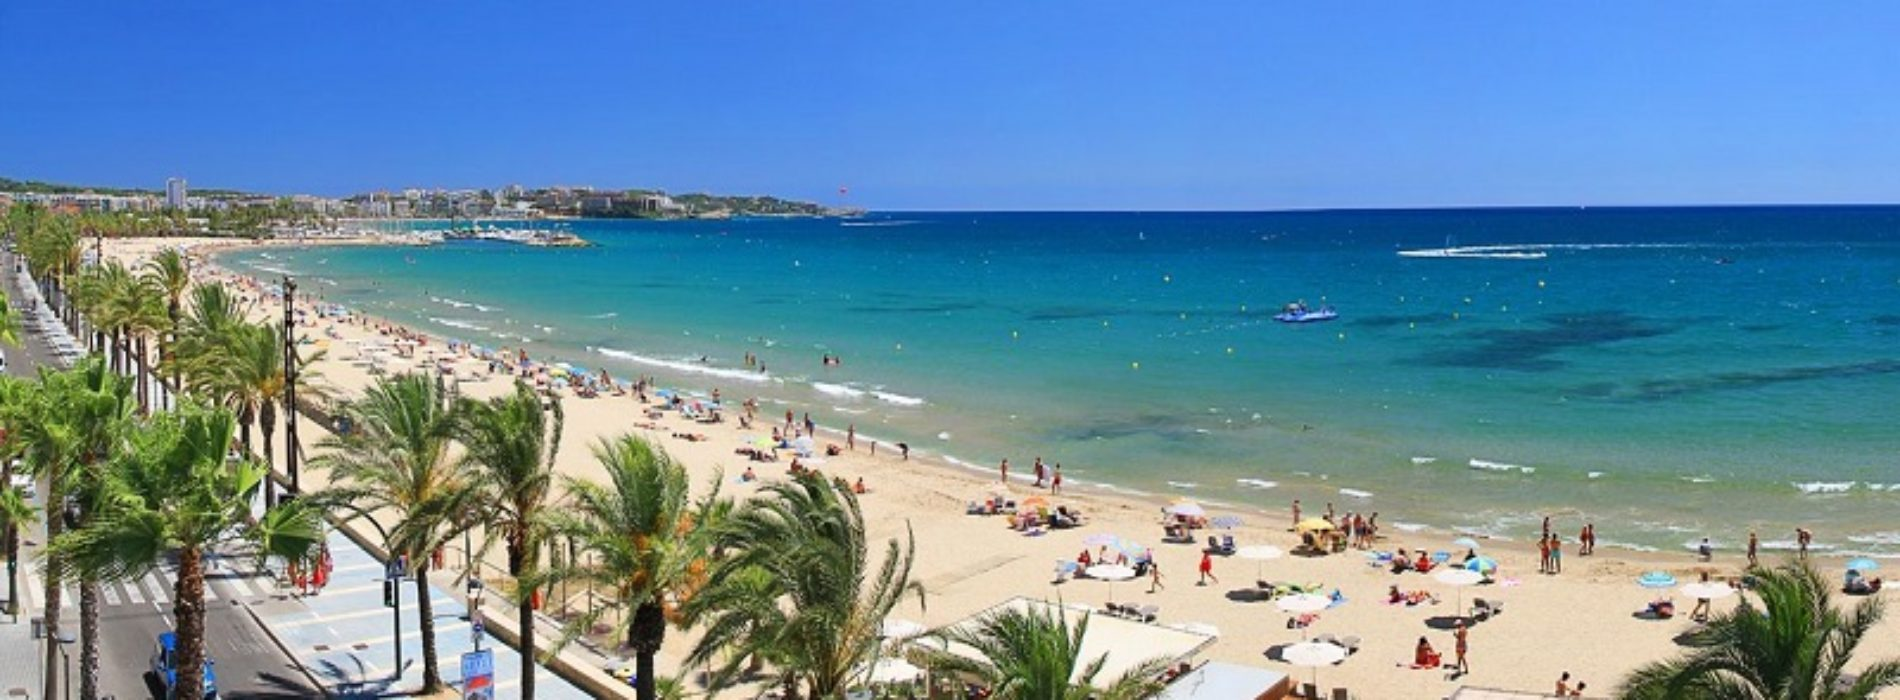 Disability and travel: holidaying in accessible Spain